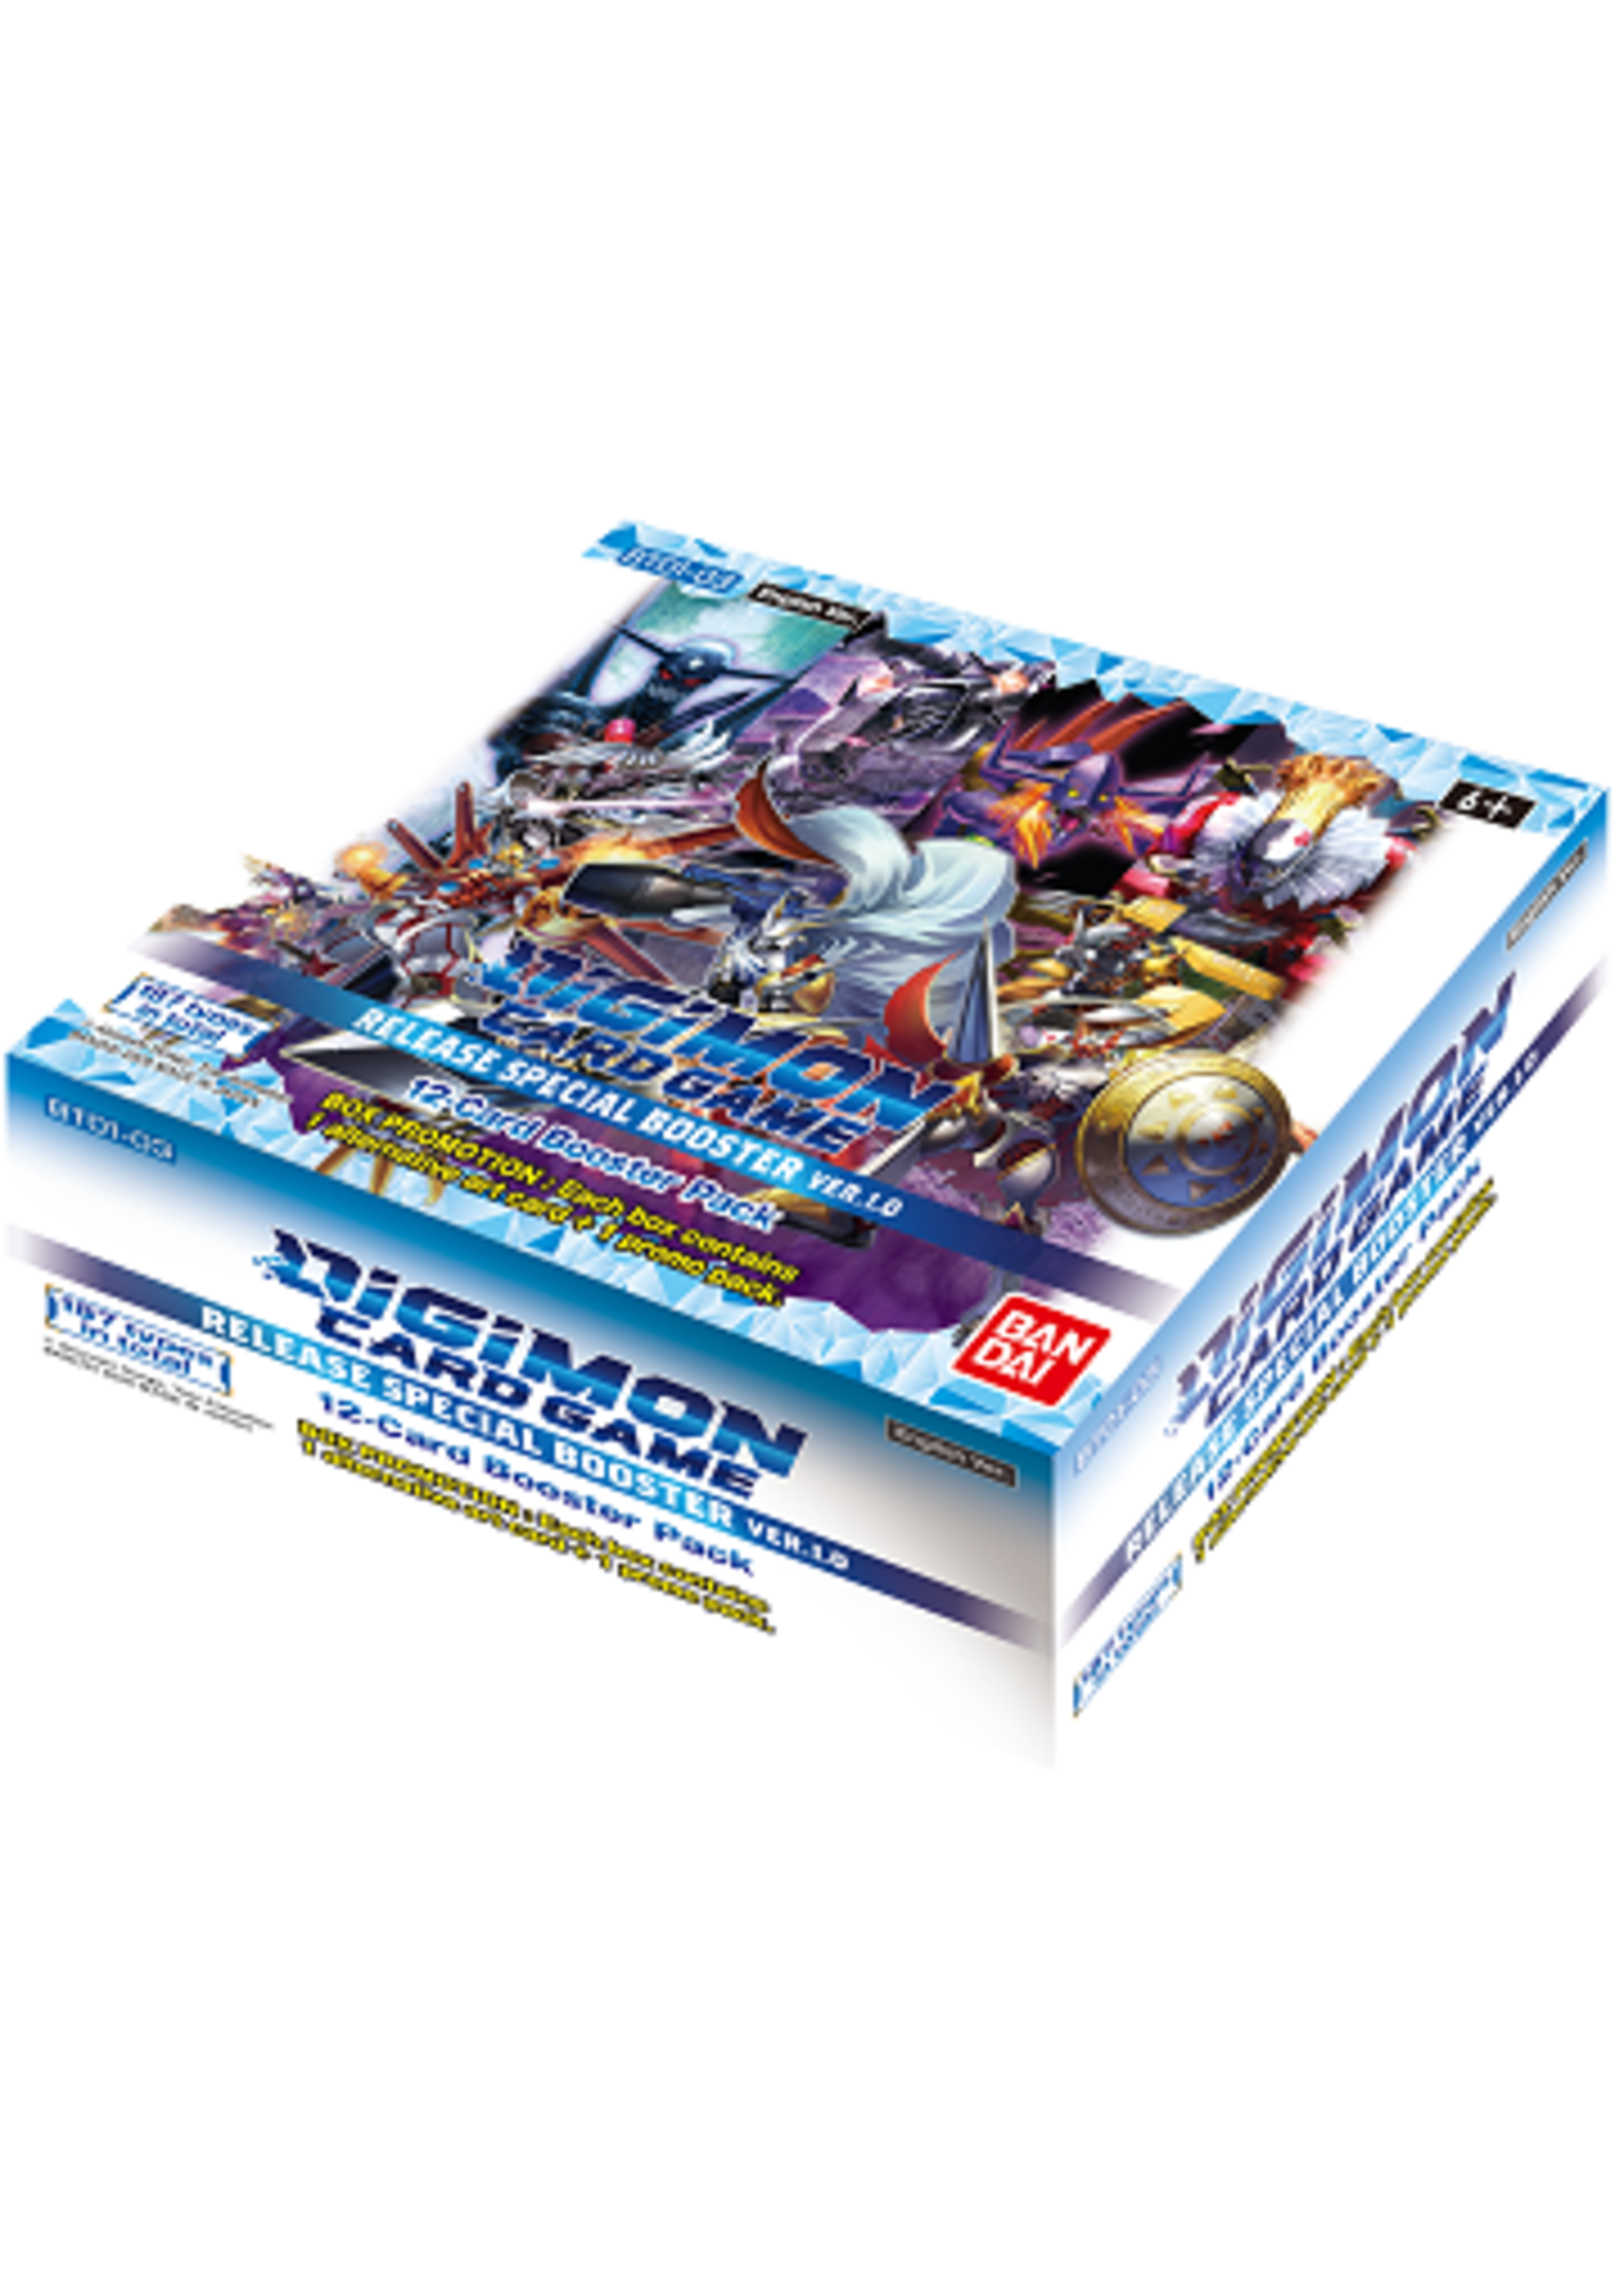 Bandai Digimon Card Game Special Release Booster Box 1.0